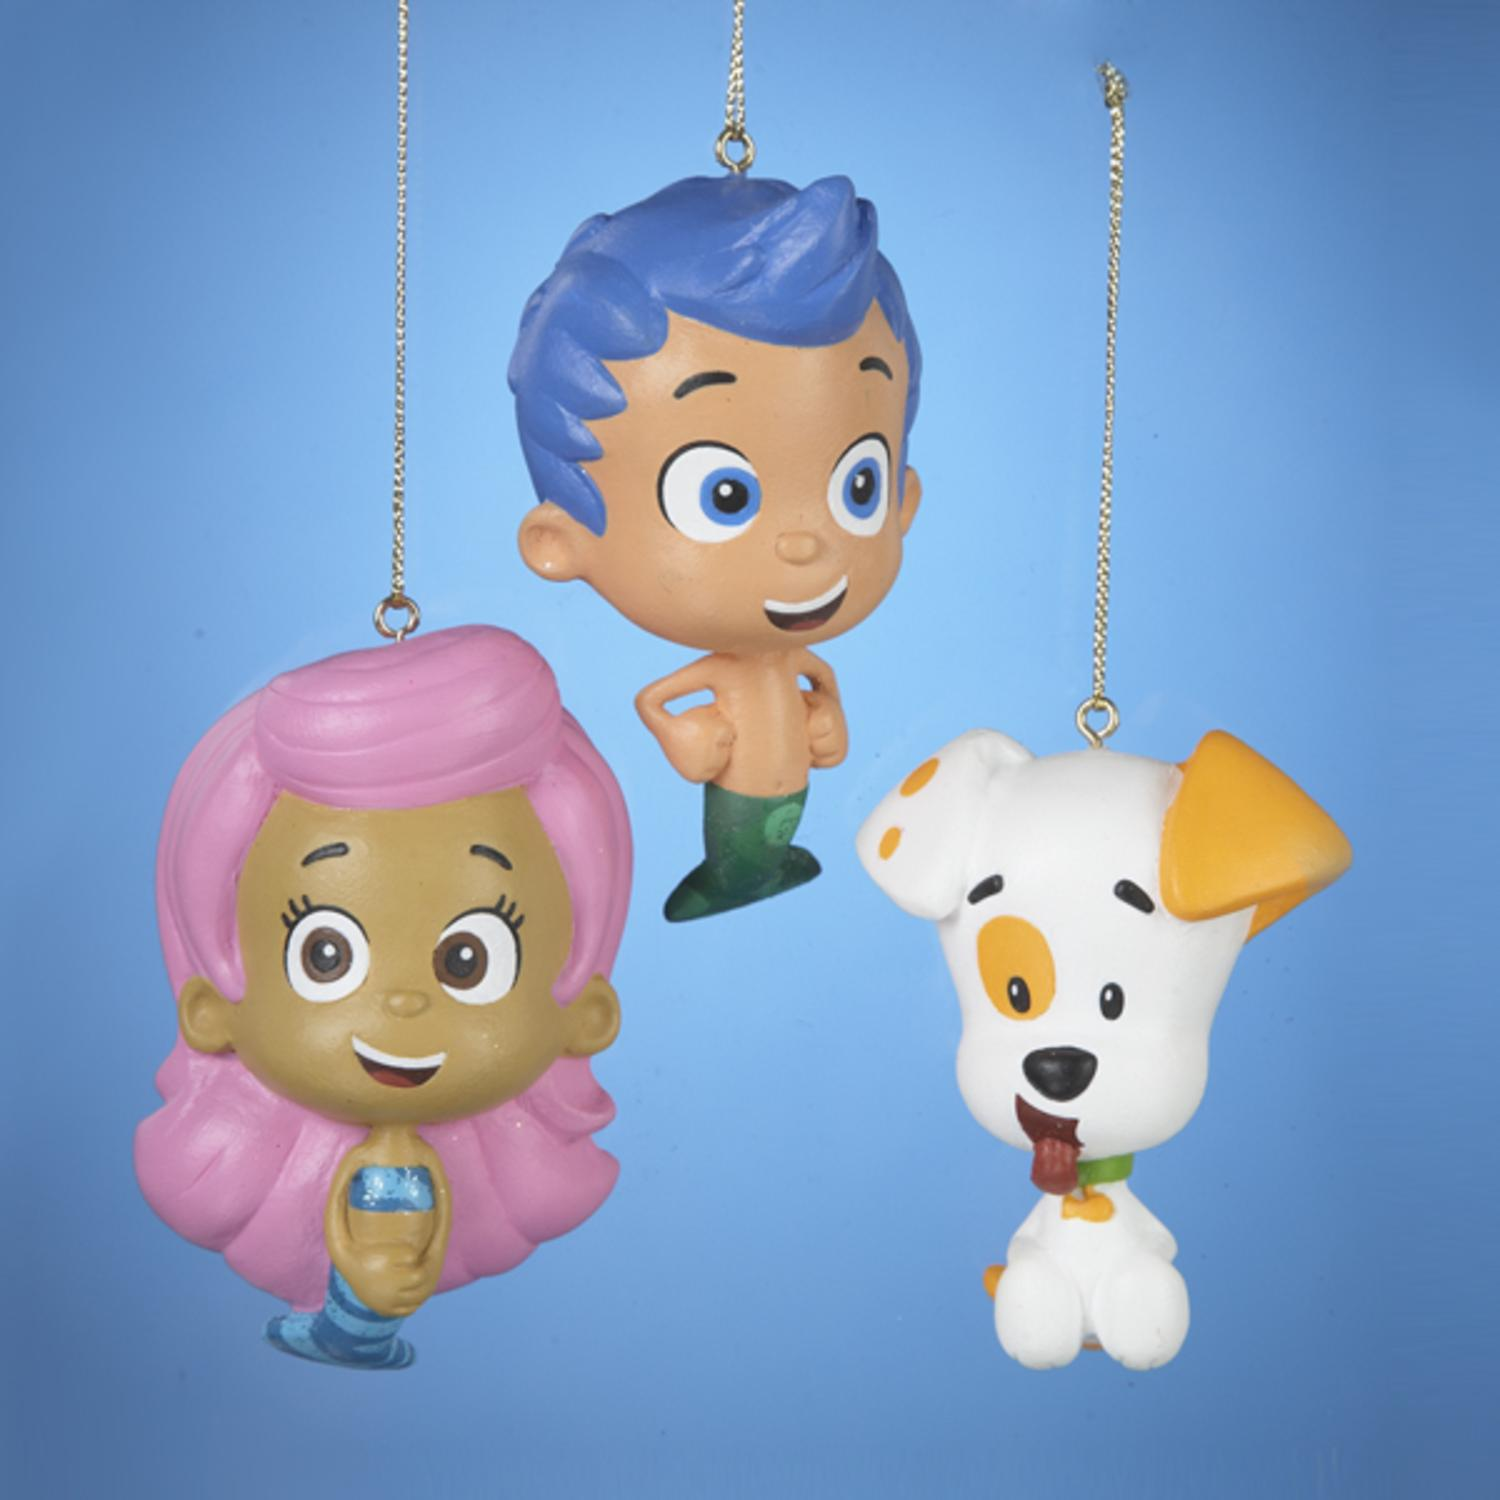 Pack of 24 Bubble Guppies Gil, Molly and Bubble Puppy Christmas Ornaments 2.5""